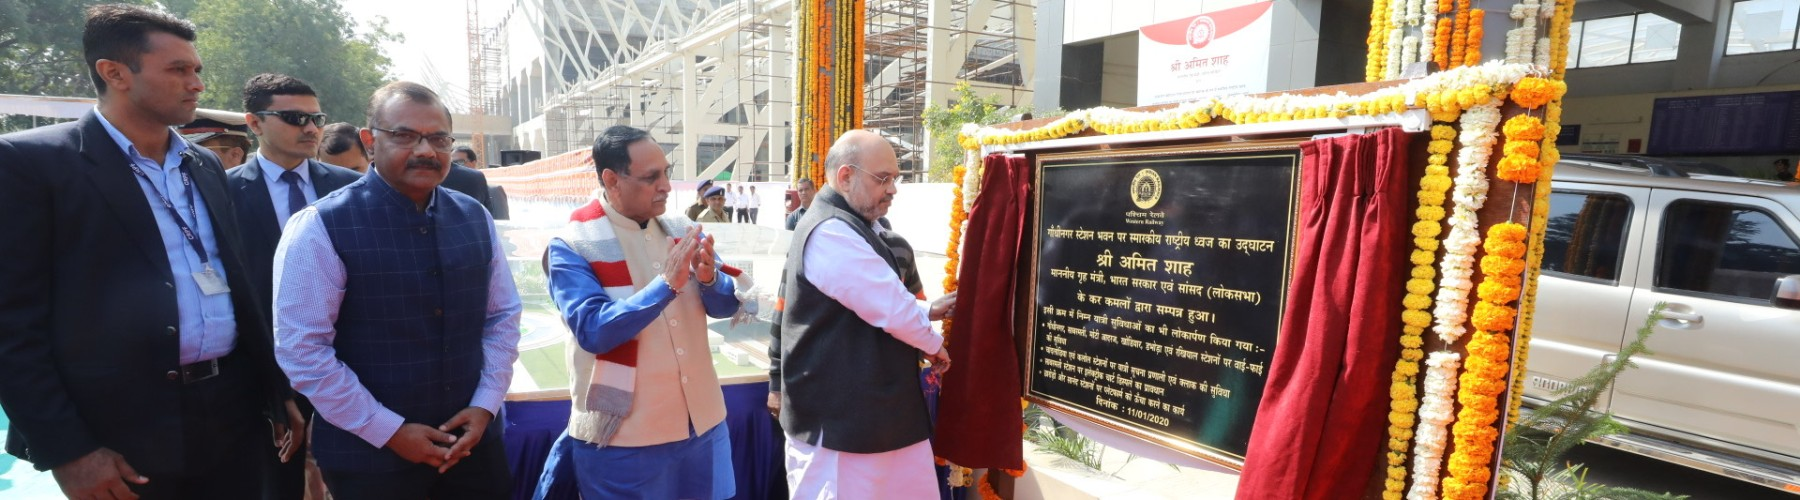 Union Minister for Home Affairs, Shri Amit Shah inaugurating various Development Projects and Facilities at 11 Railway Stations in Gandhinagar, on January 11, 2020. Chief Minister, Gujarat, Shri Vijay Rupani is also seen.